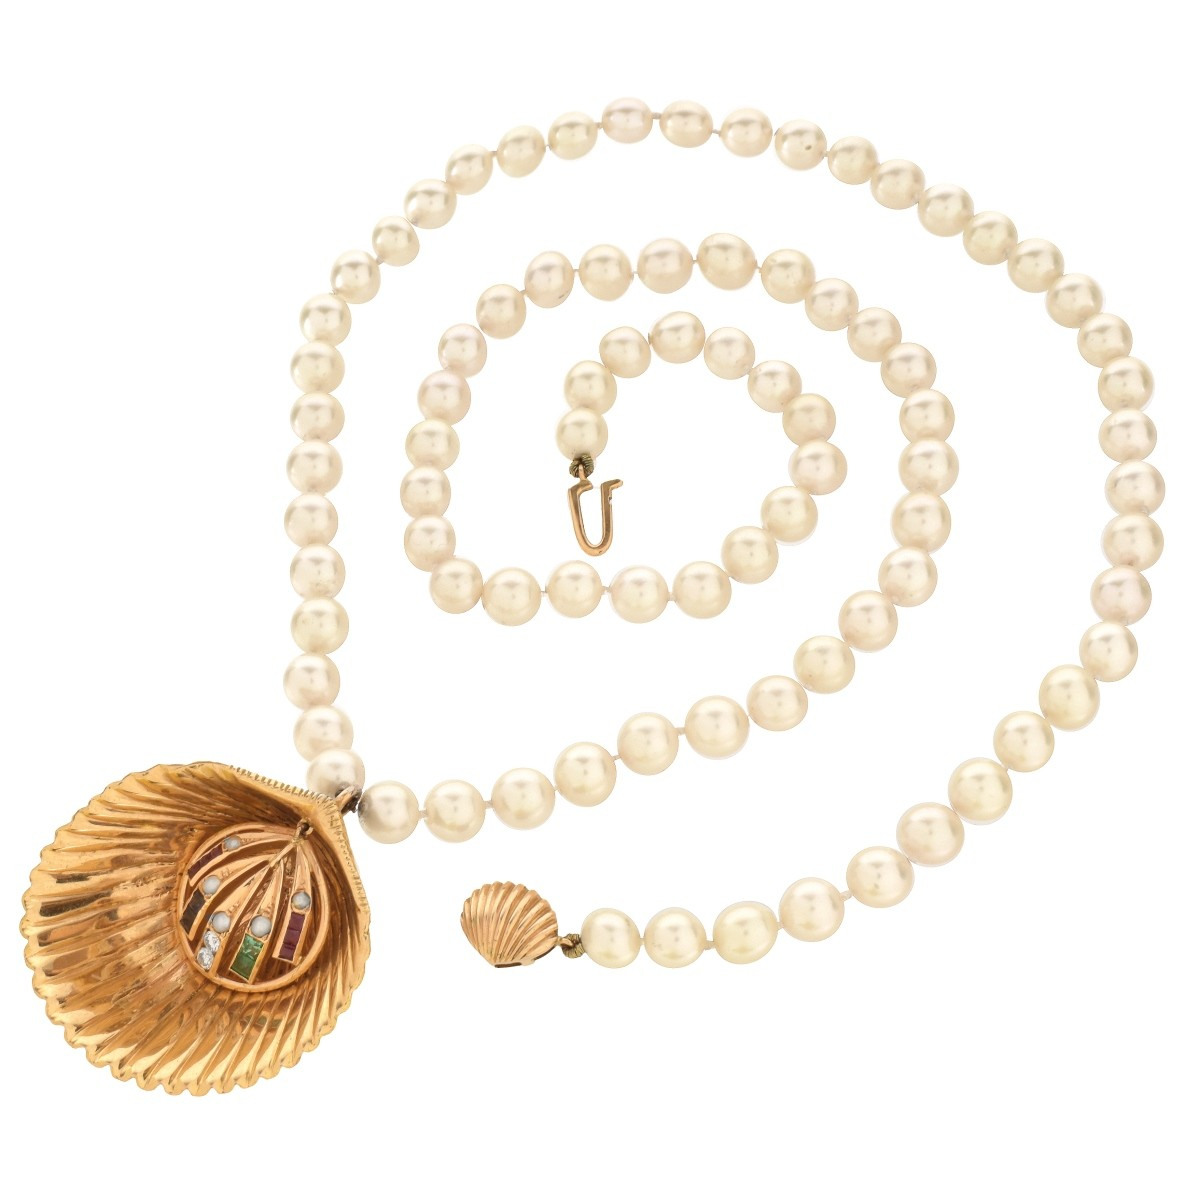 Vintage Pearl, Gemstone and 18K Pendant Necklace